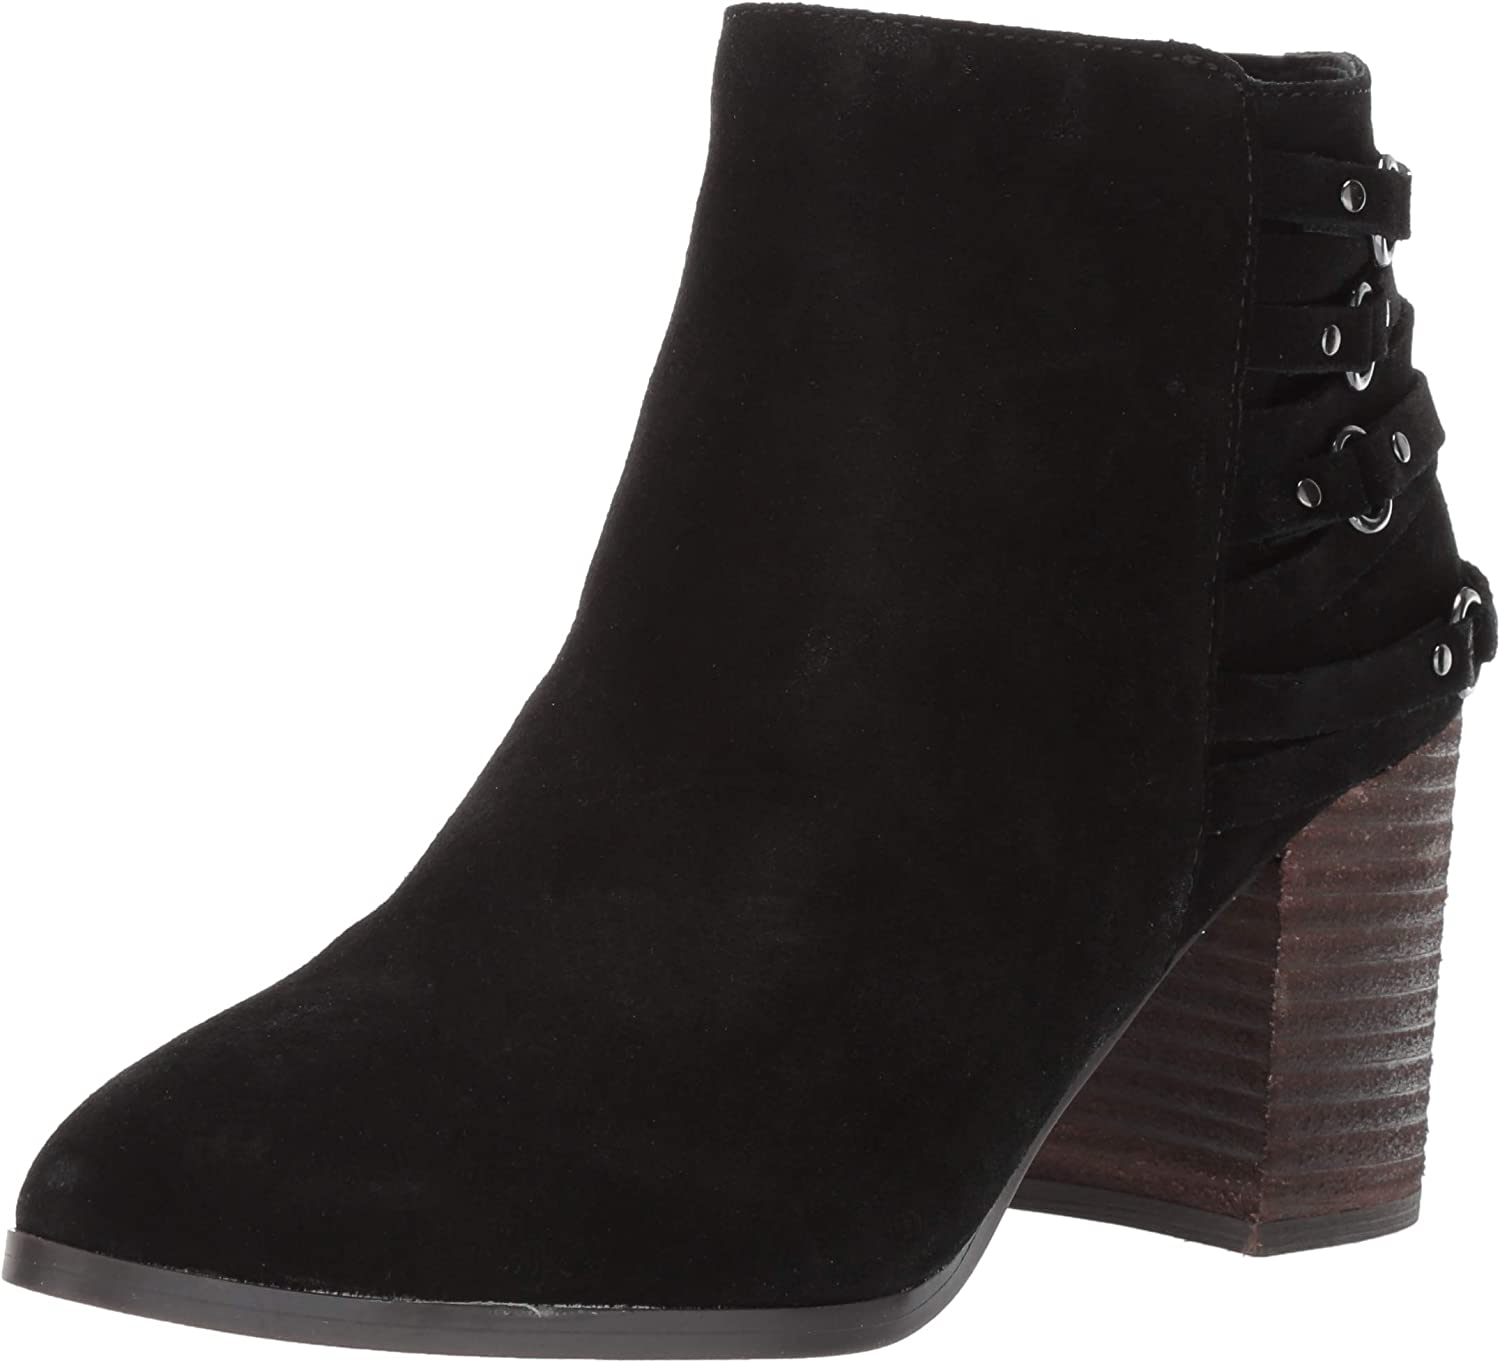 Fergie Women's Boston Ankle Boot